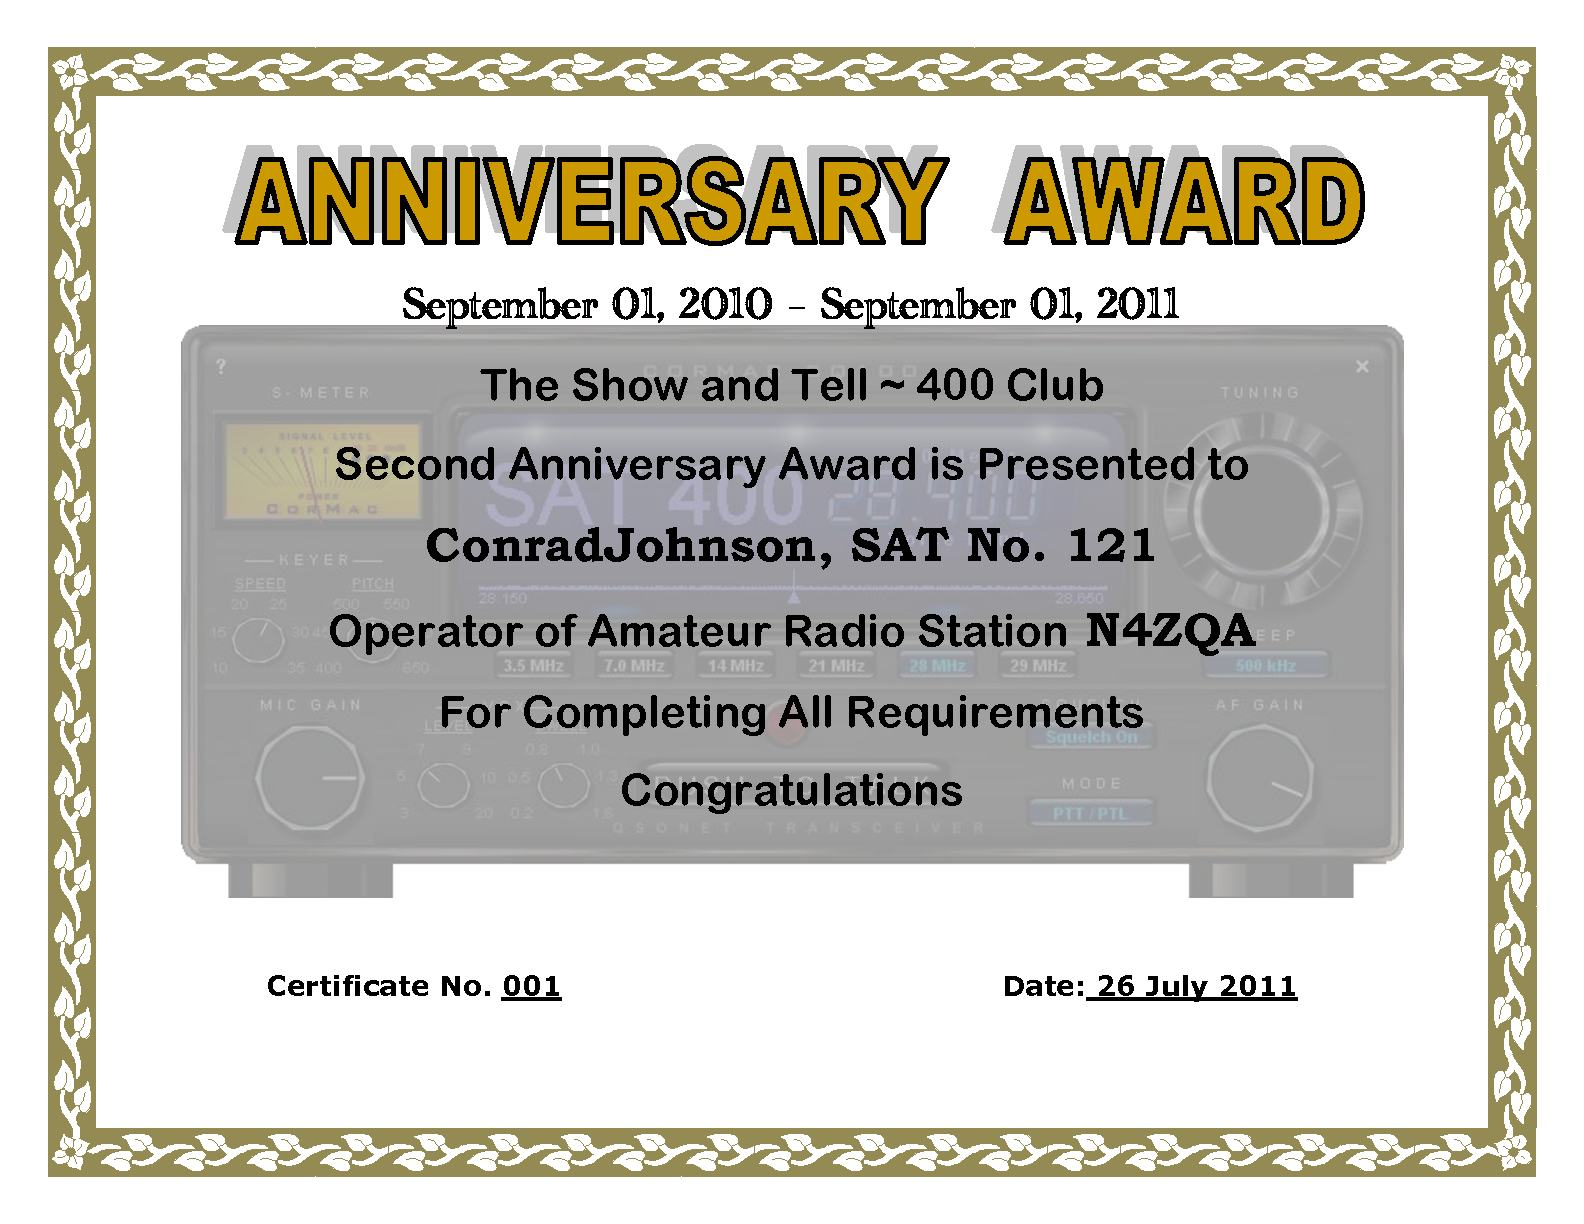 show and tell second anniversary award